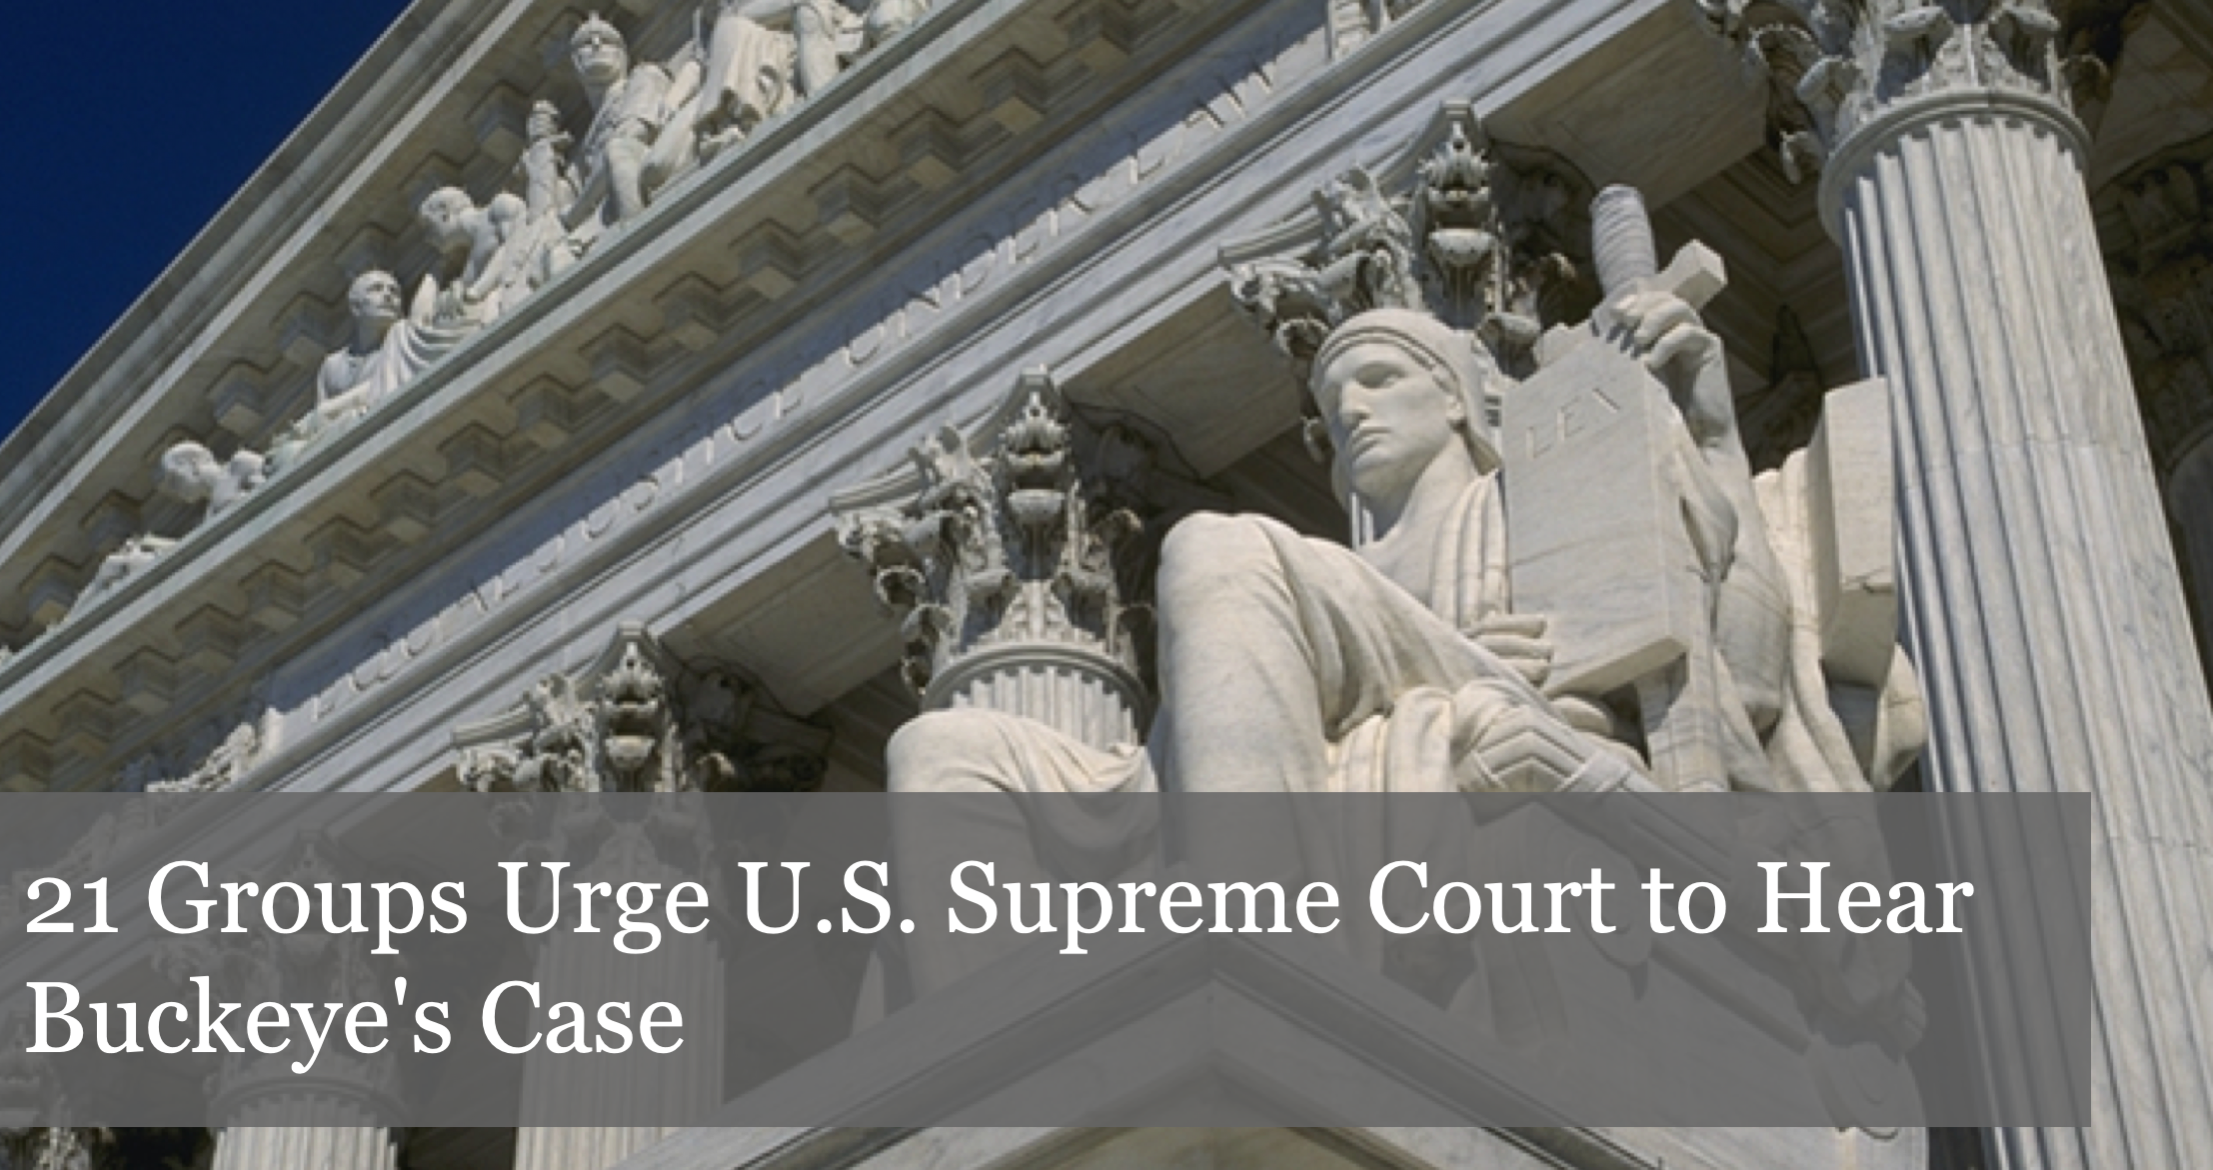 21 Nationally Renowned Policy Groups Urge U.S. Supreme Court to Hear Buckeye's Case to End Forced Union Exclusive Representation